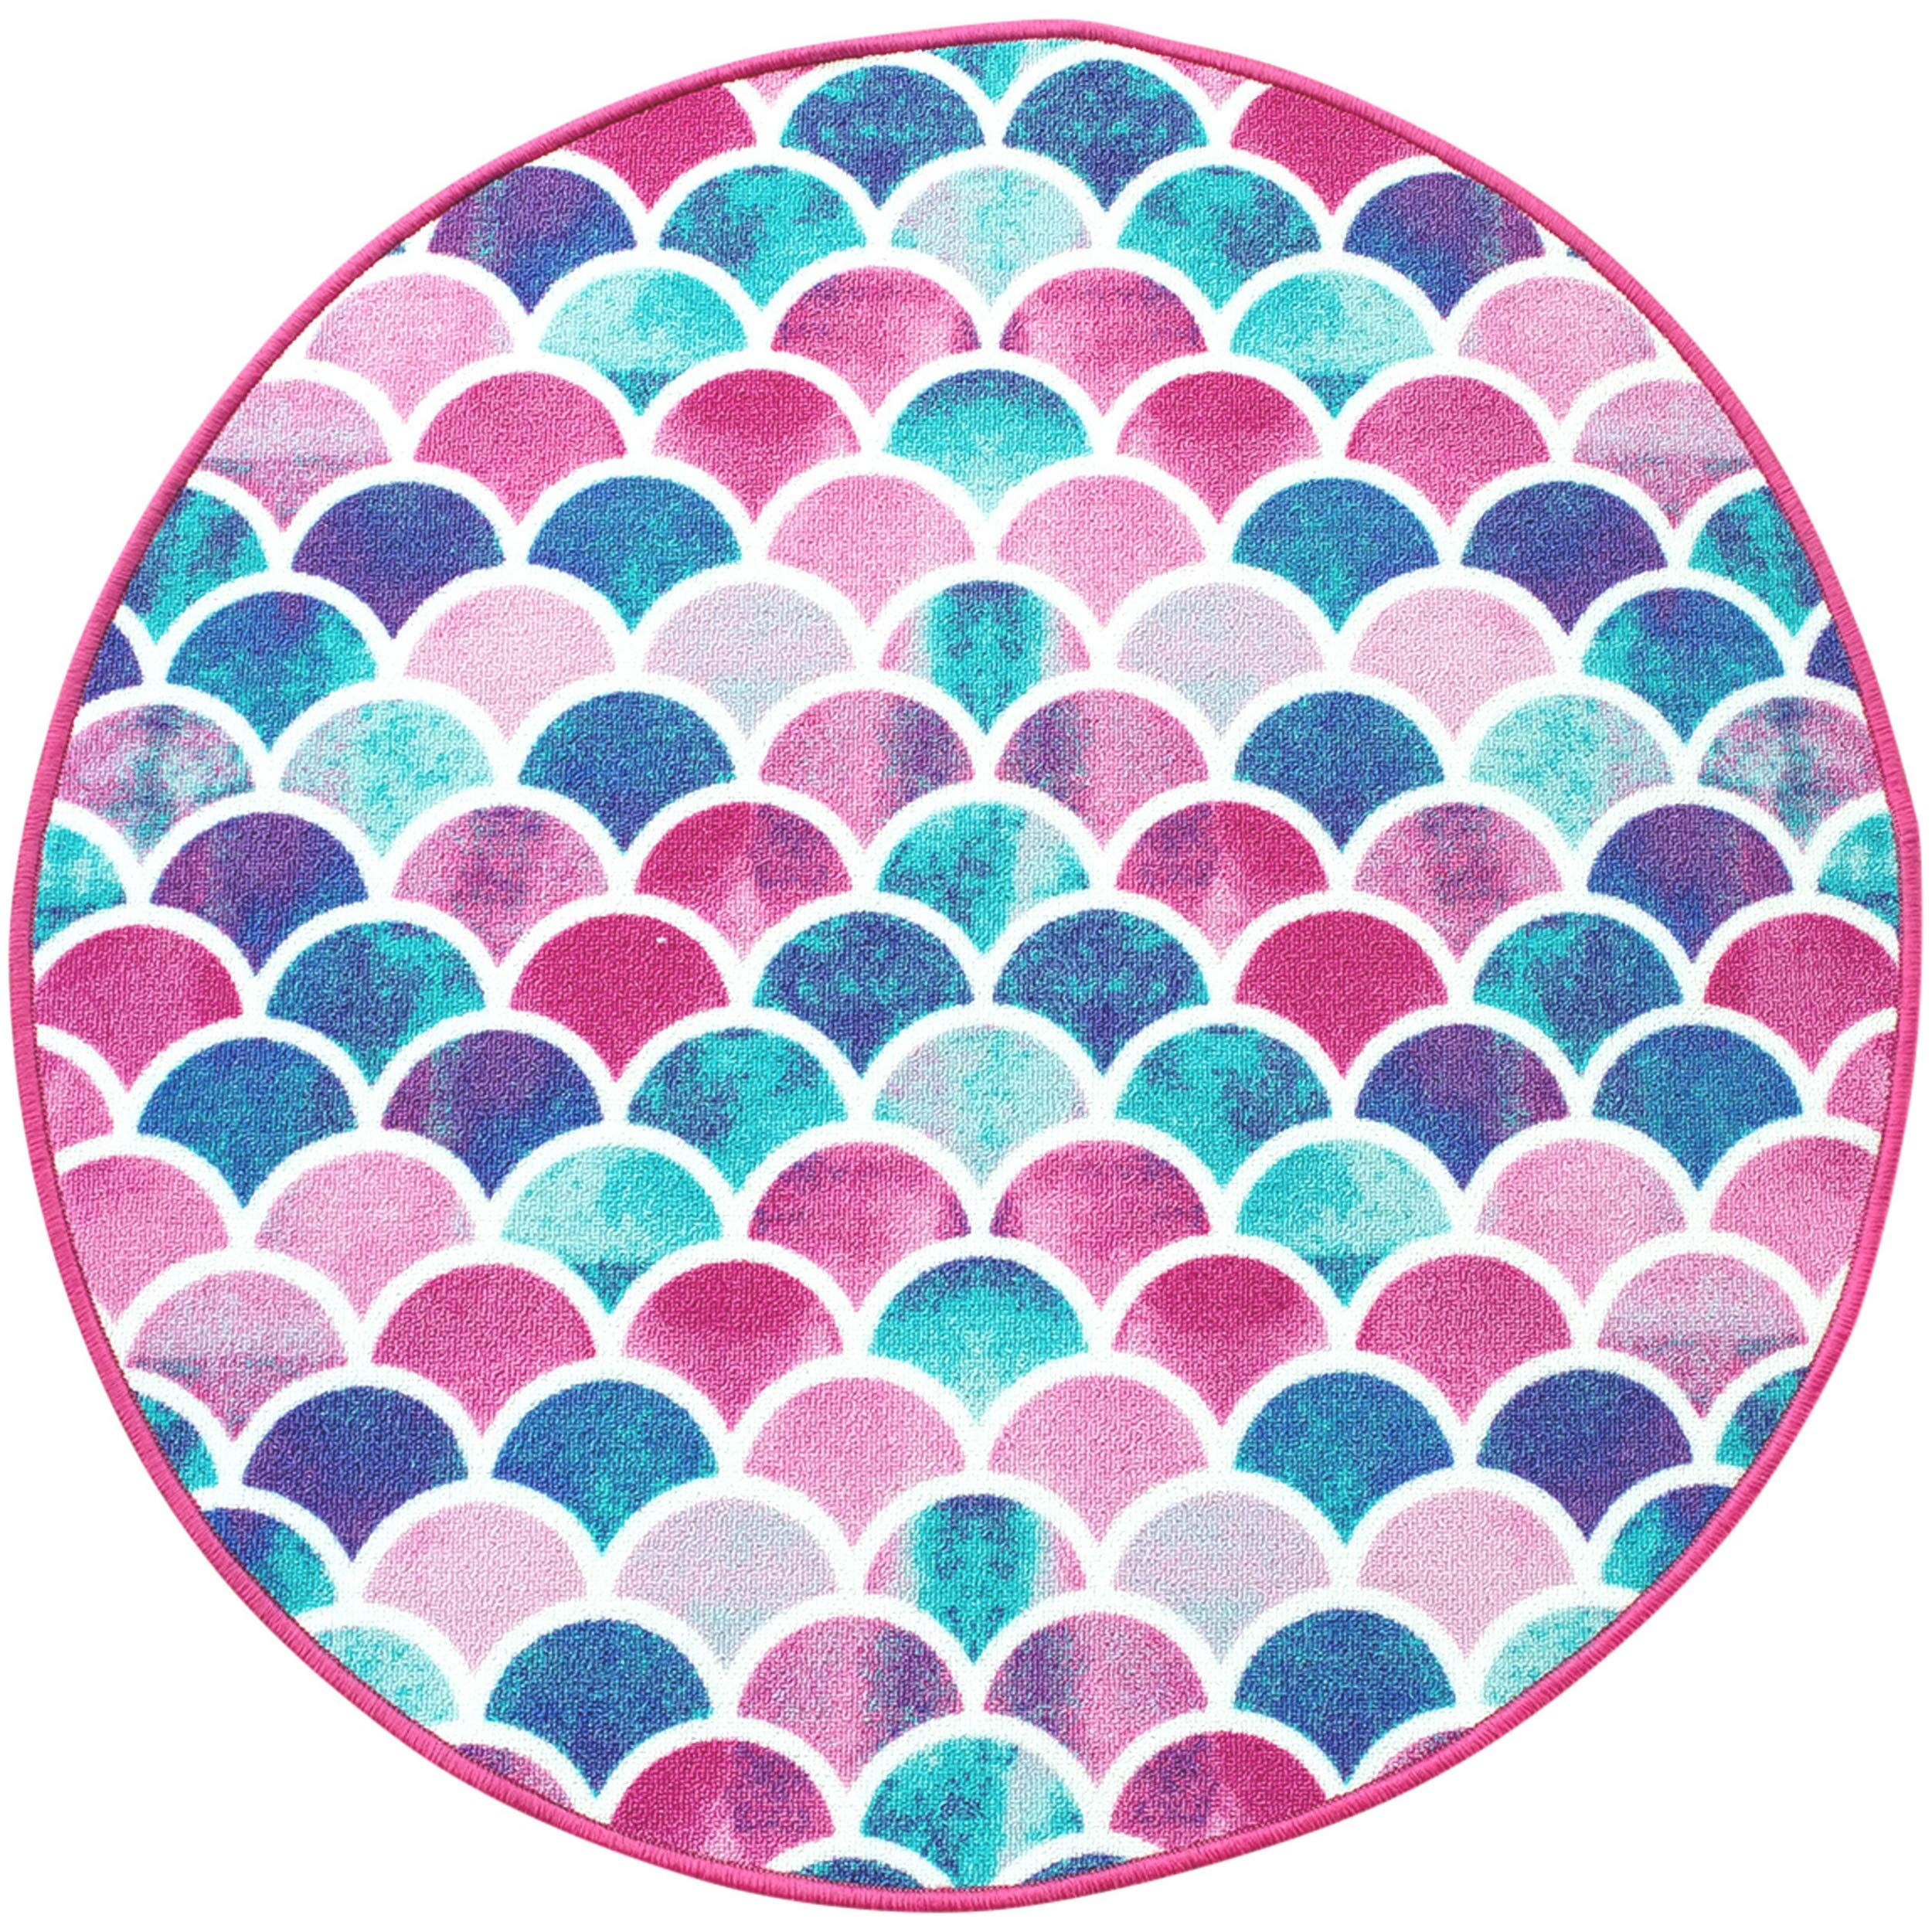 Beautiful, Ultra Plush Mermaid Non Slip Area Rug. Colorful Kids Playroom, Bathroom, or Bedroom Carpet. Bright Pink, Purple, Aqua and Turquoise Colors. Play Mat for Young Girls, Toddlers and Children